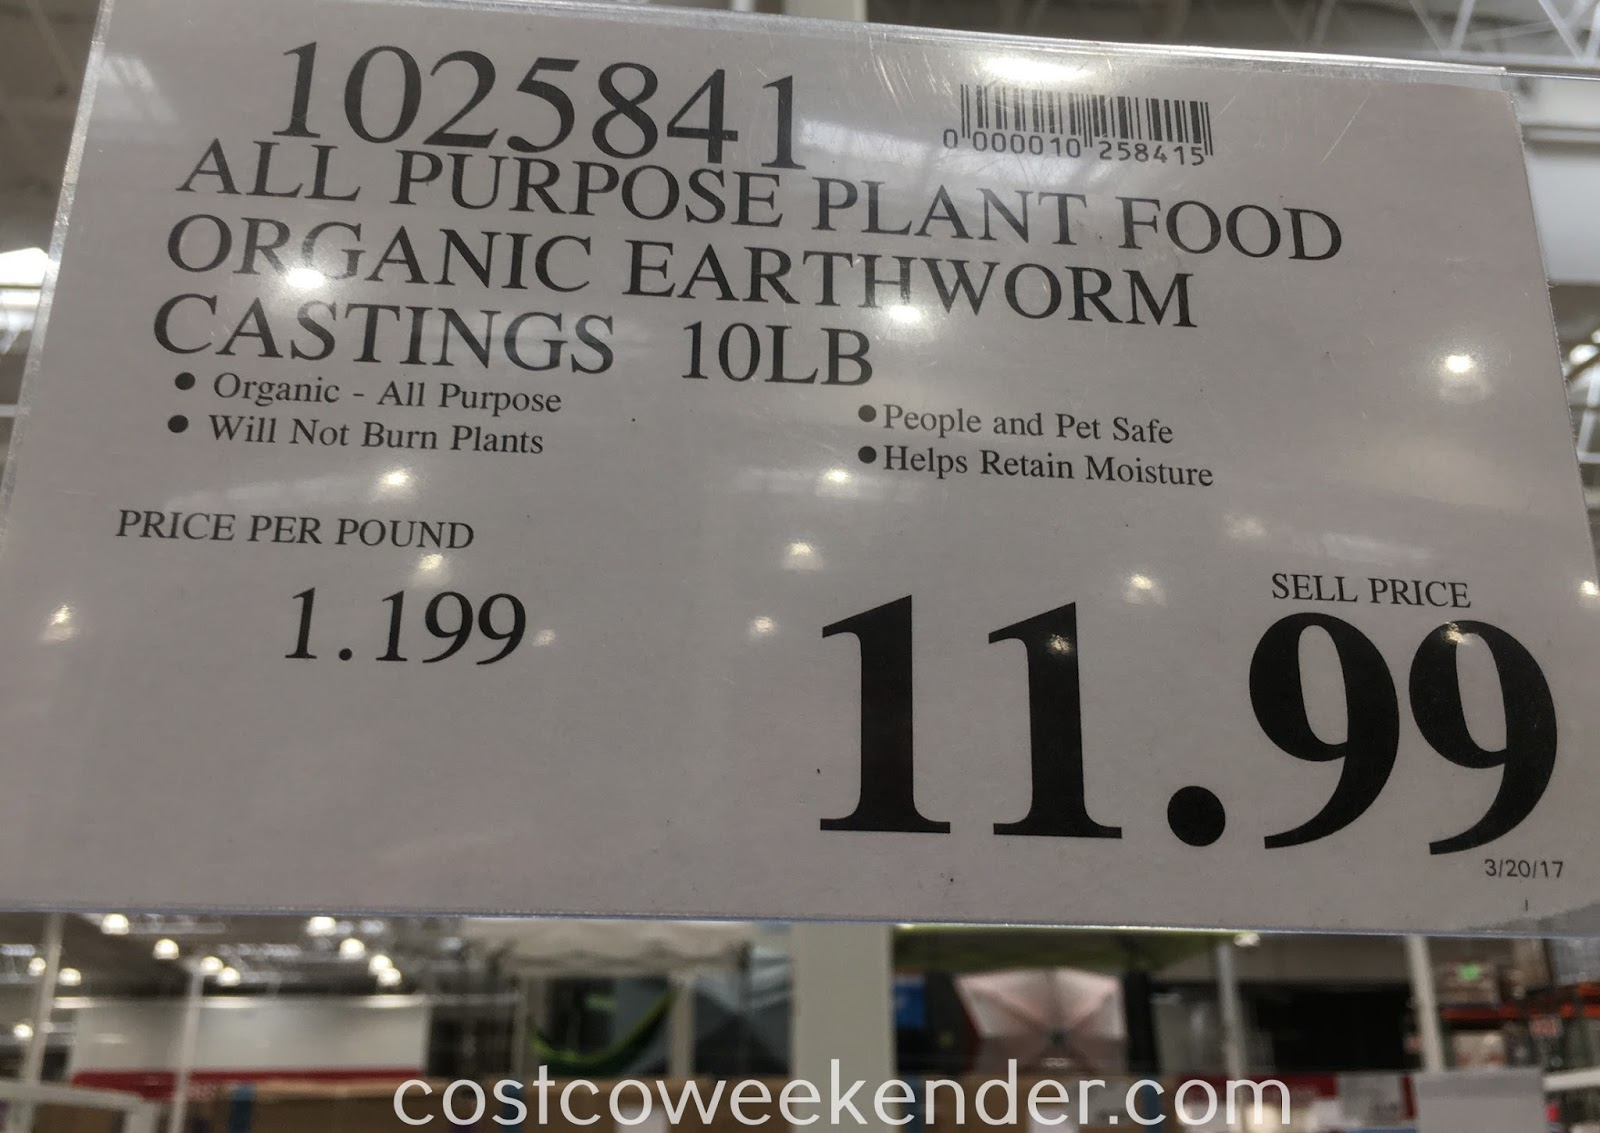 Deal for a 10 lb bag of Impact Organics All Purpose Plant Food Earthworm Castings at Costco